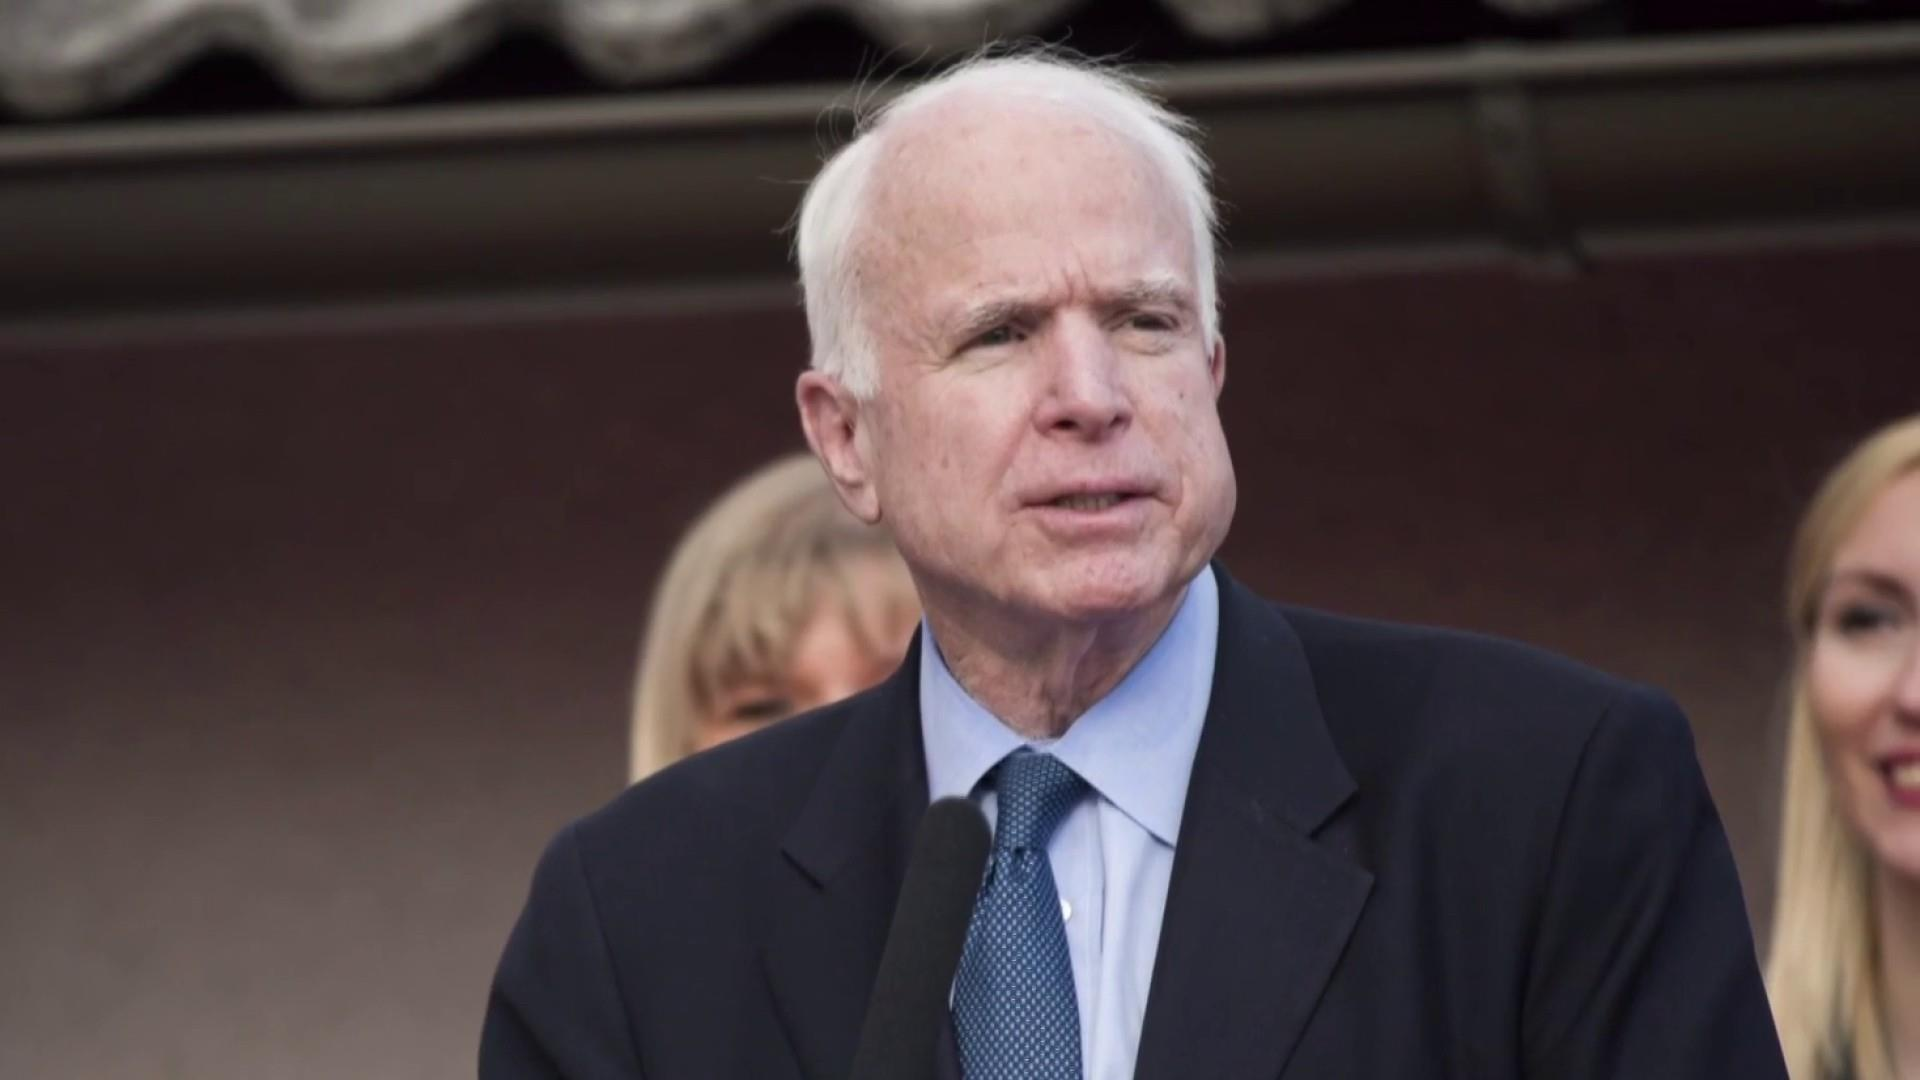 Why is the GOP silent as President Trump attacks McCain?